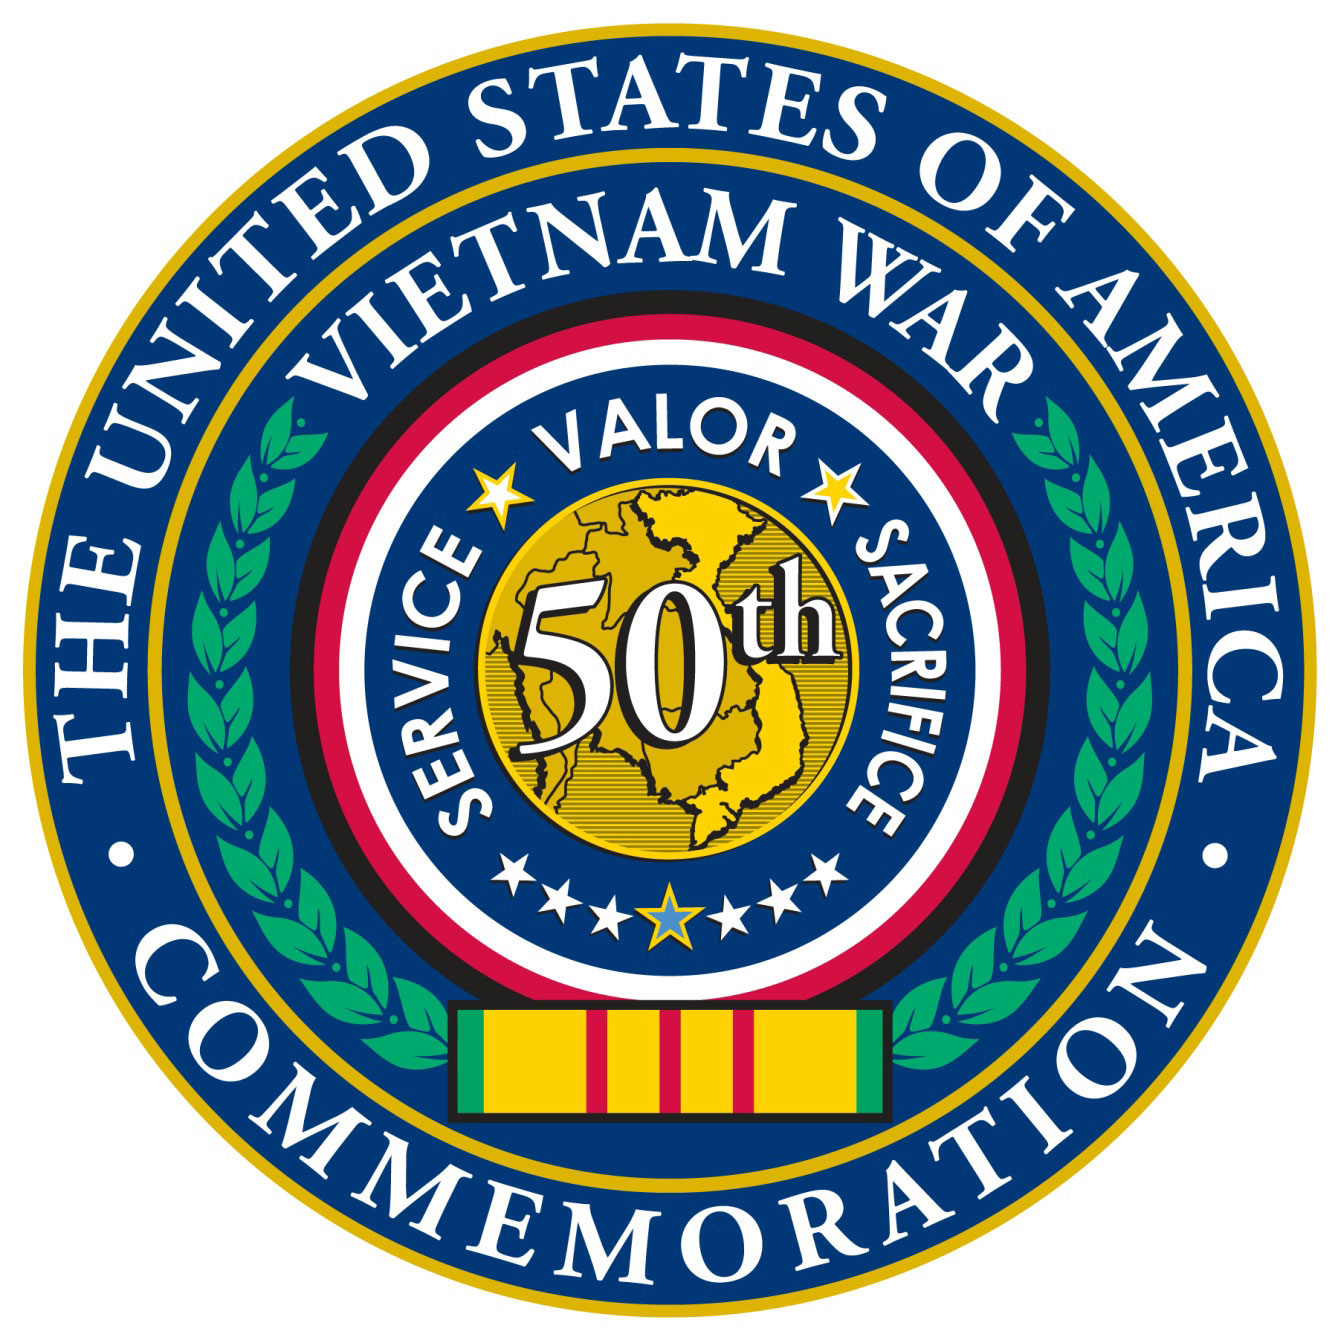 50th Commemoration Seal